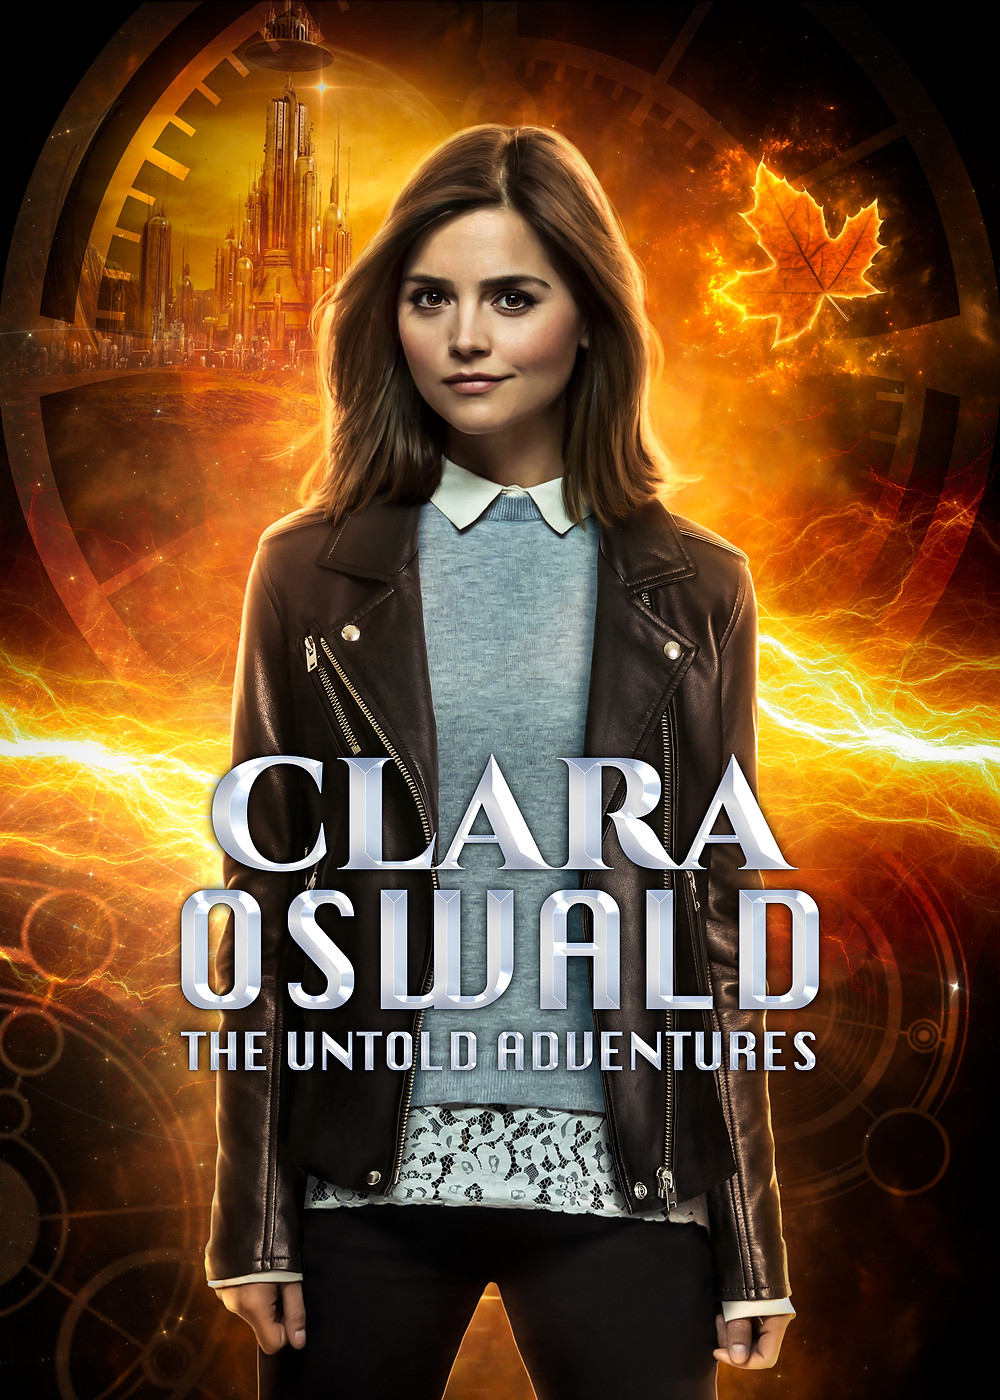 Clara 'Out of Time' poster